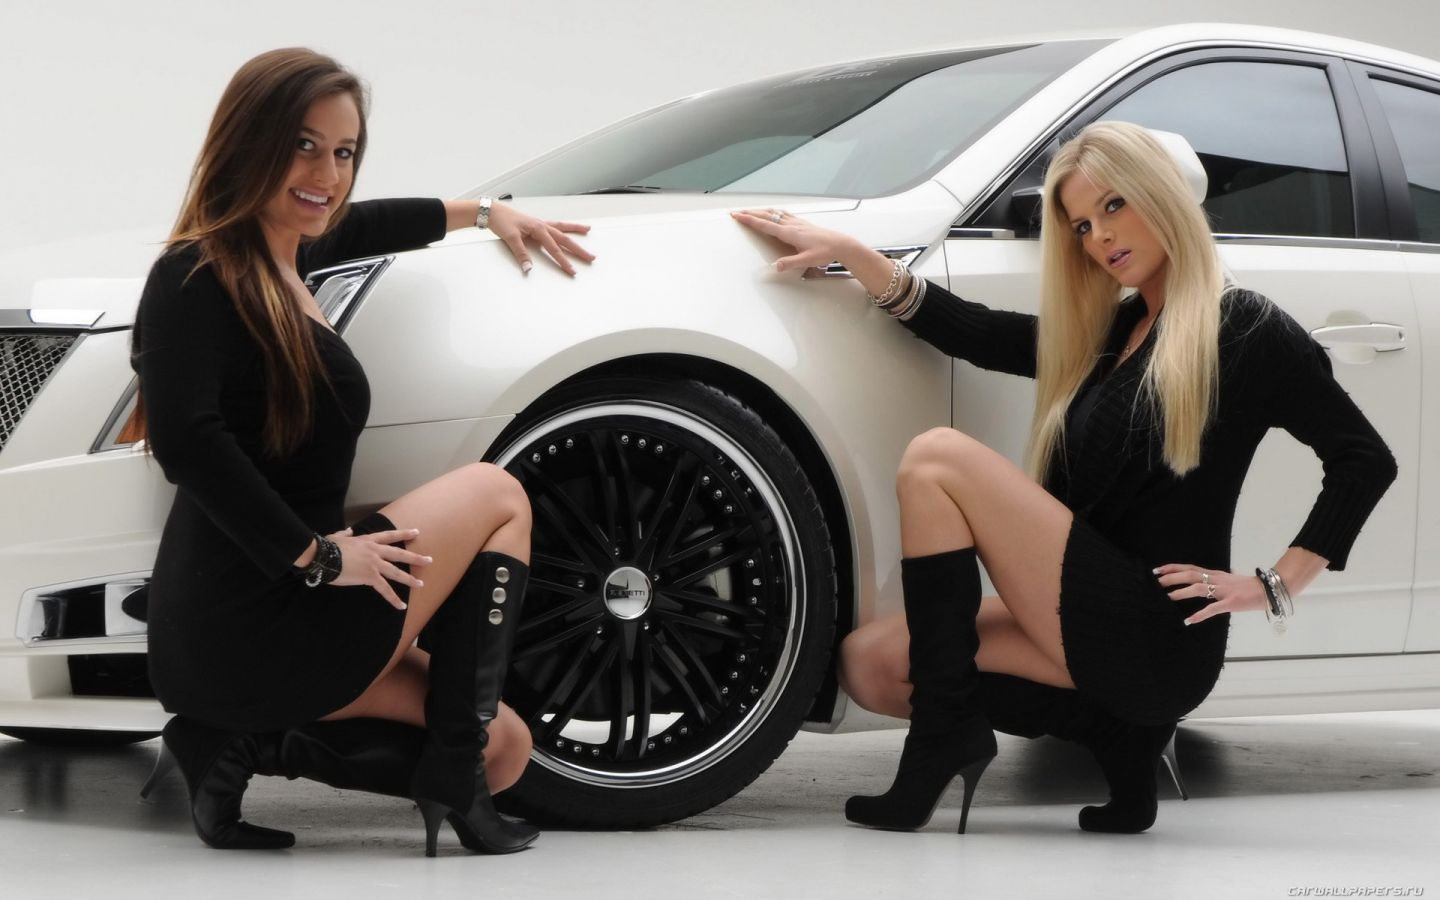 pin by sally wagner on amazing cars cars sexy cars car girls rh pinterest com